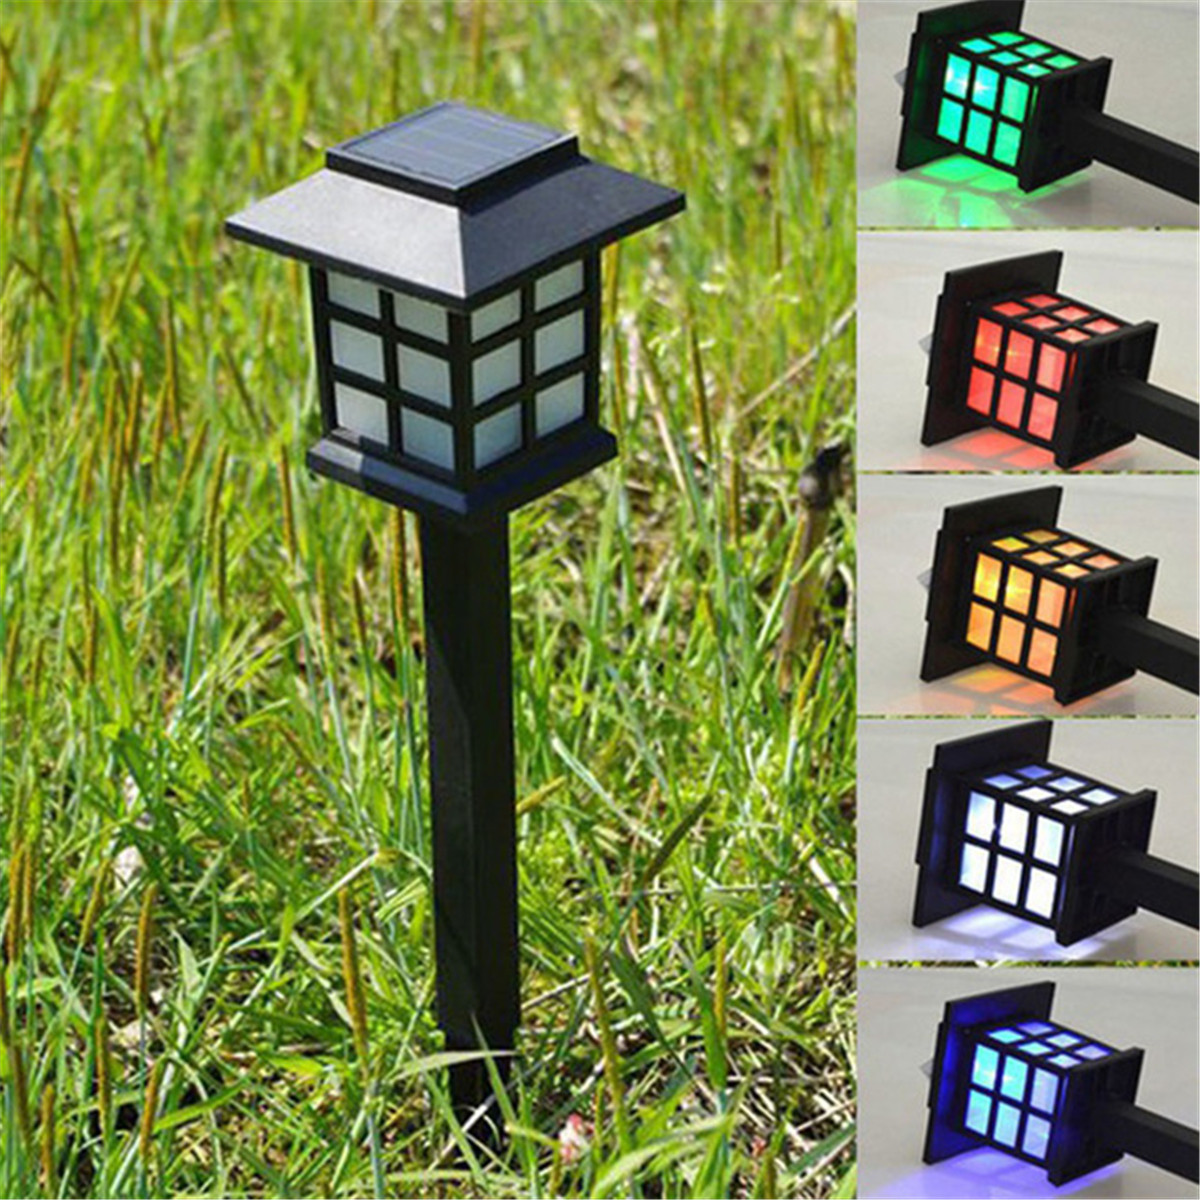 Solar Power LED Garden Fence Path Way Wall Landscape Mount Outdoor Lamp Light Colorful/White/Warm Light Auto-light Function Save